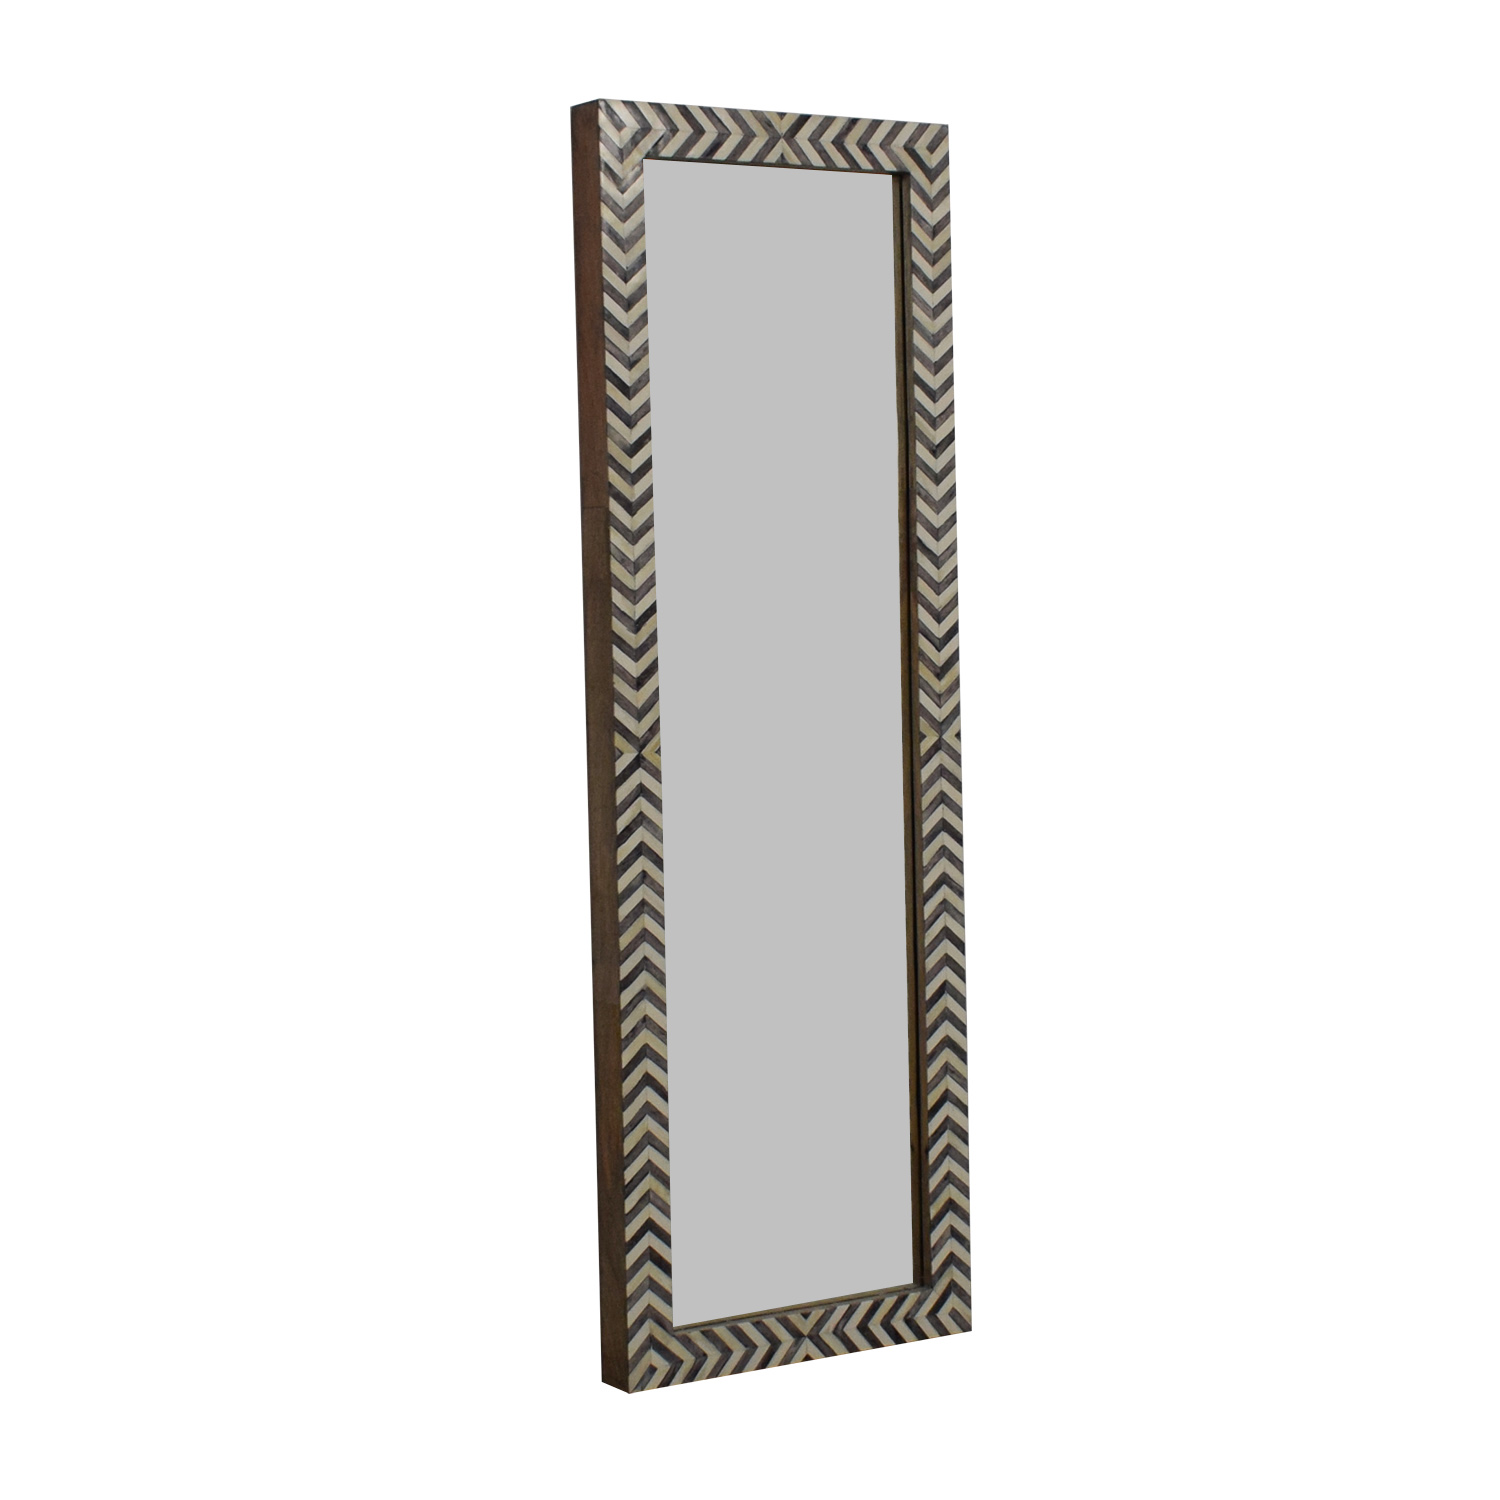 West Elm West Elm Parsons Chevron Floor Mirror used